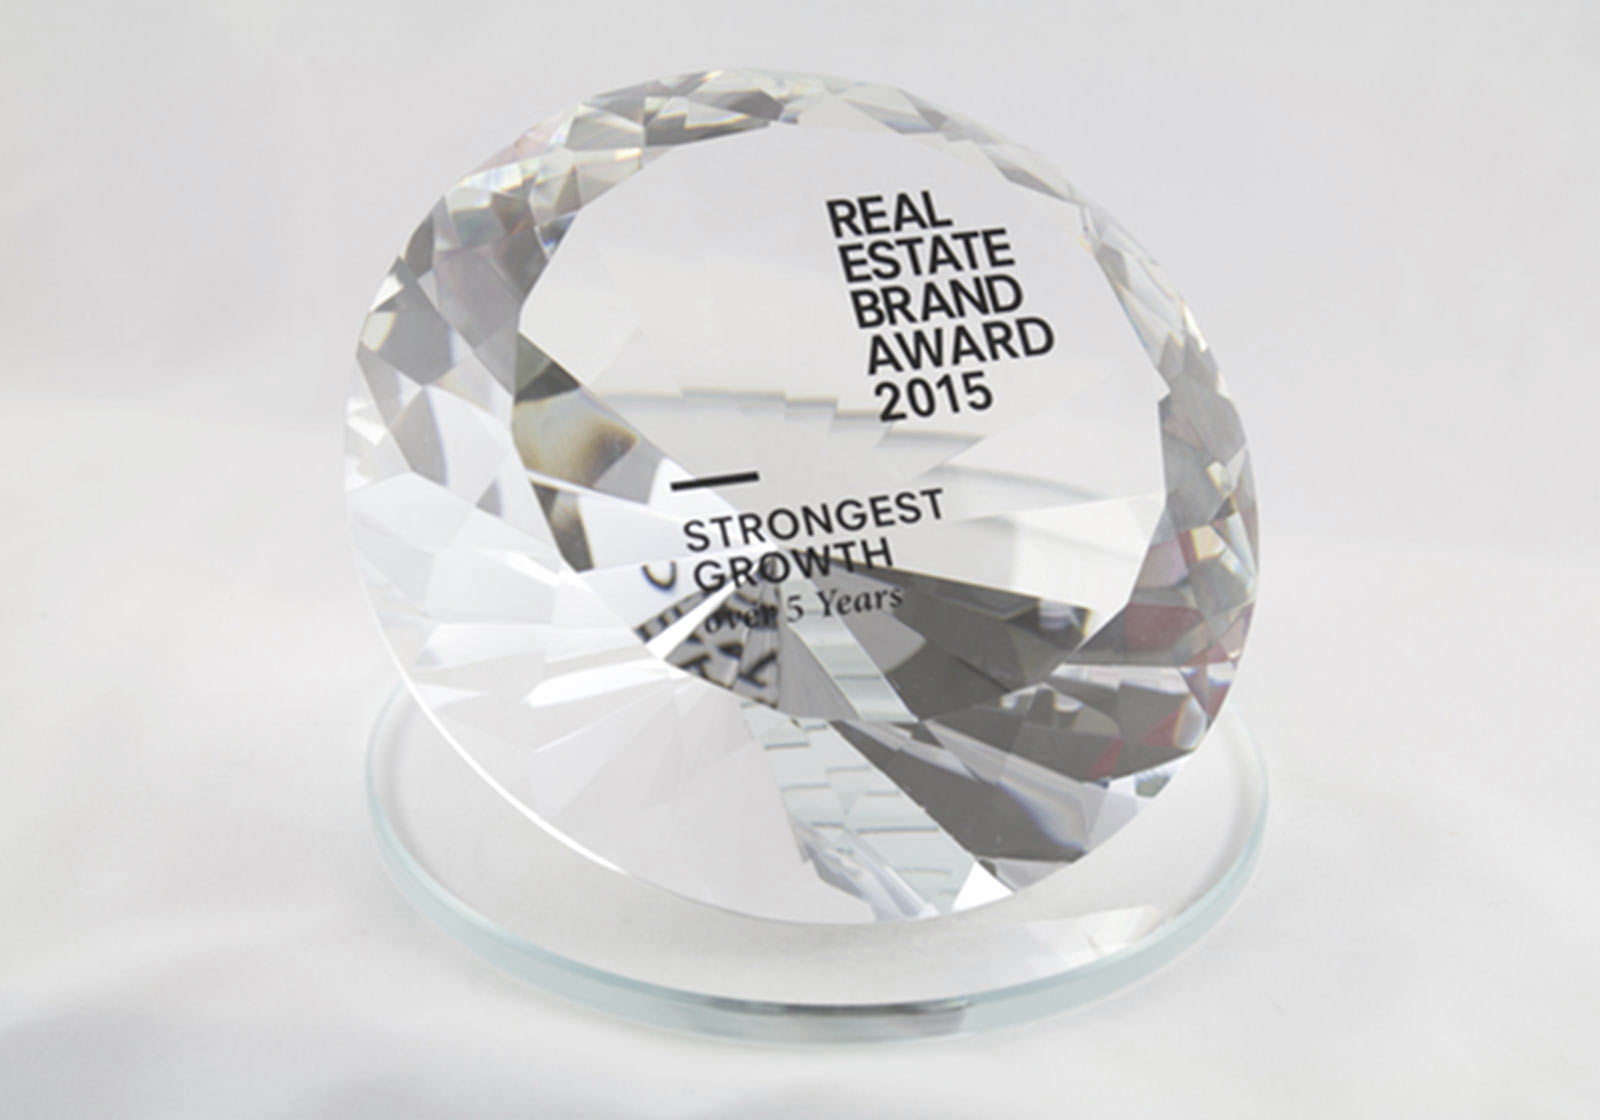 Real Estate Brand Award 2016. Foto:European Real Estate Brand Institute